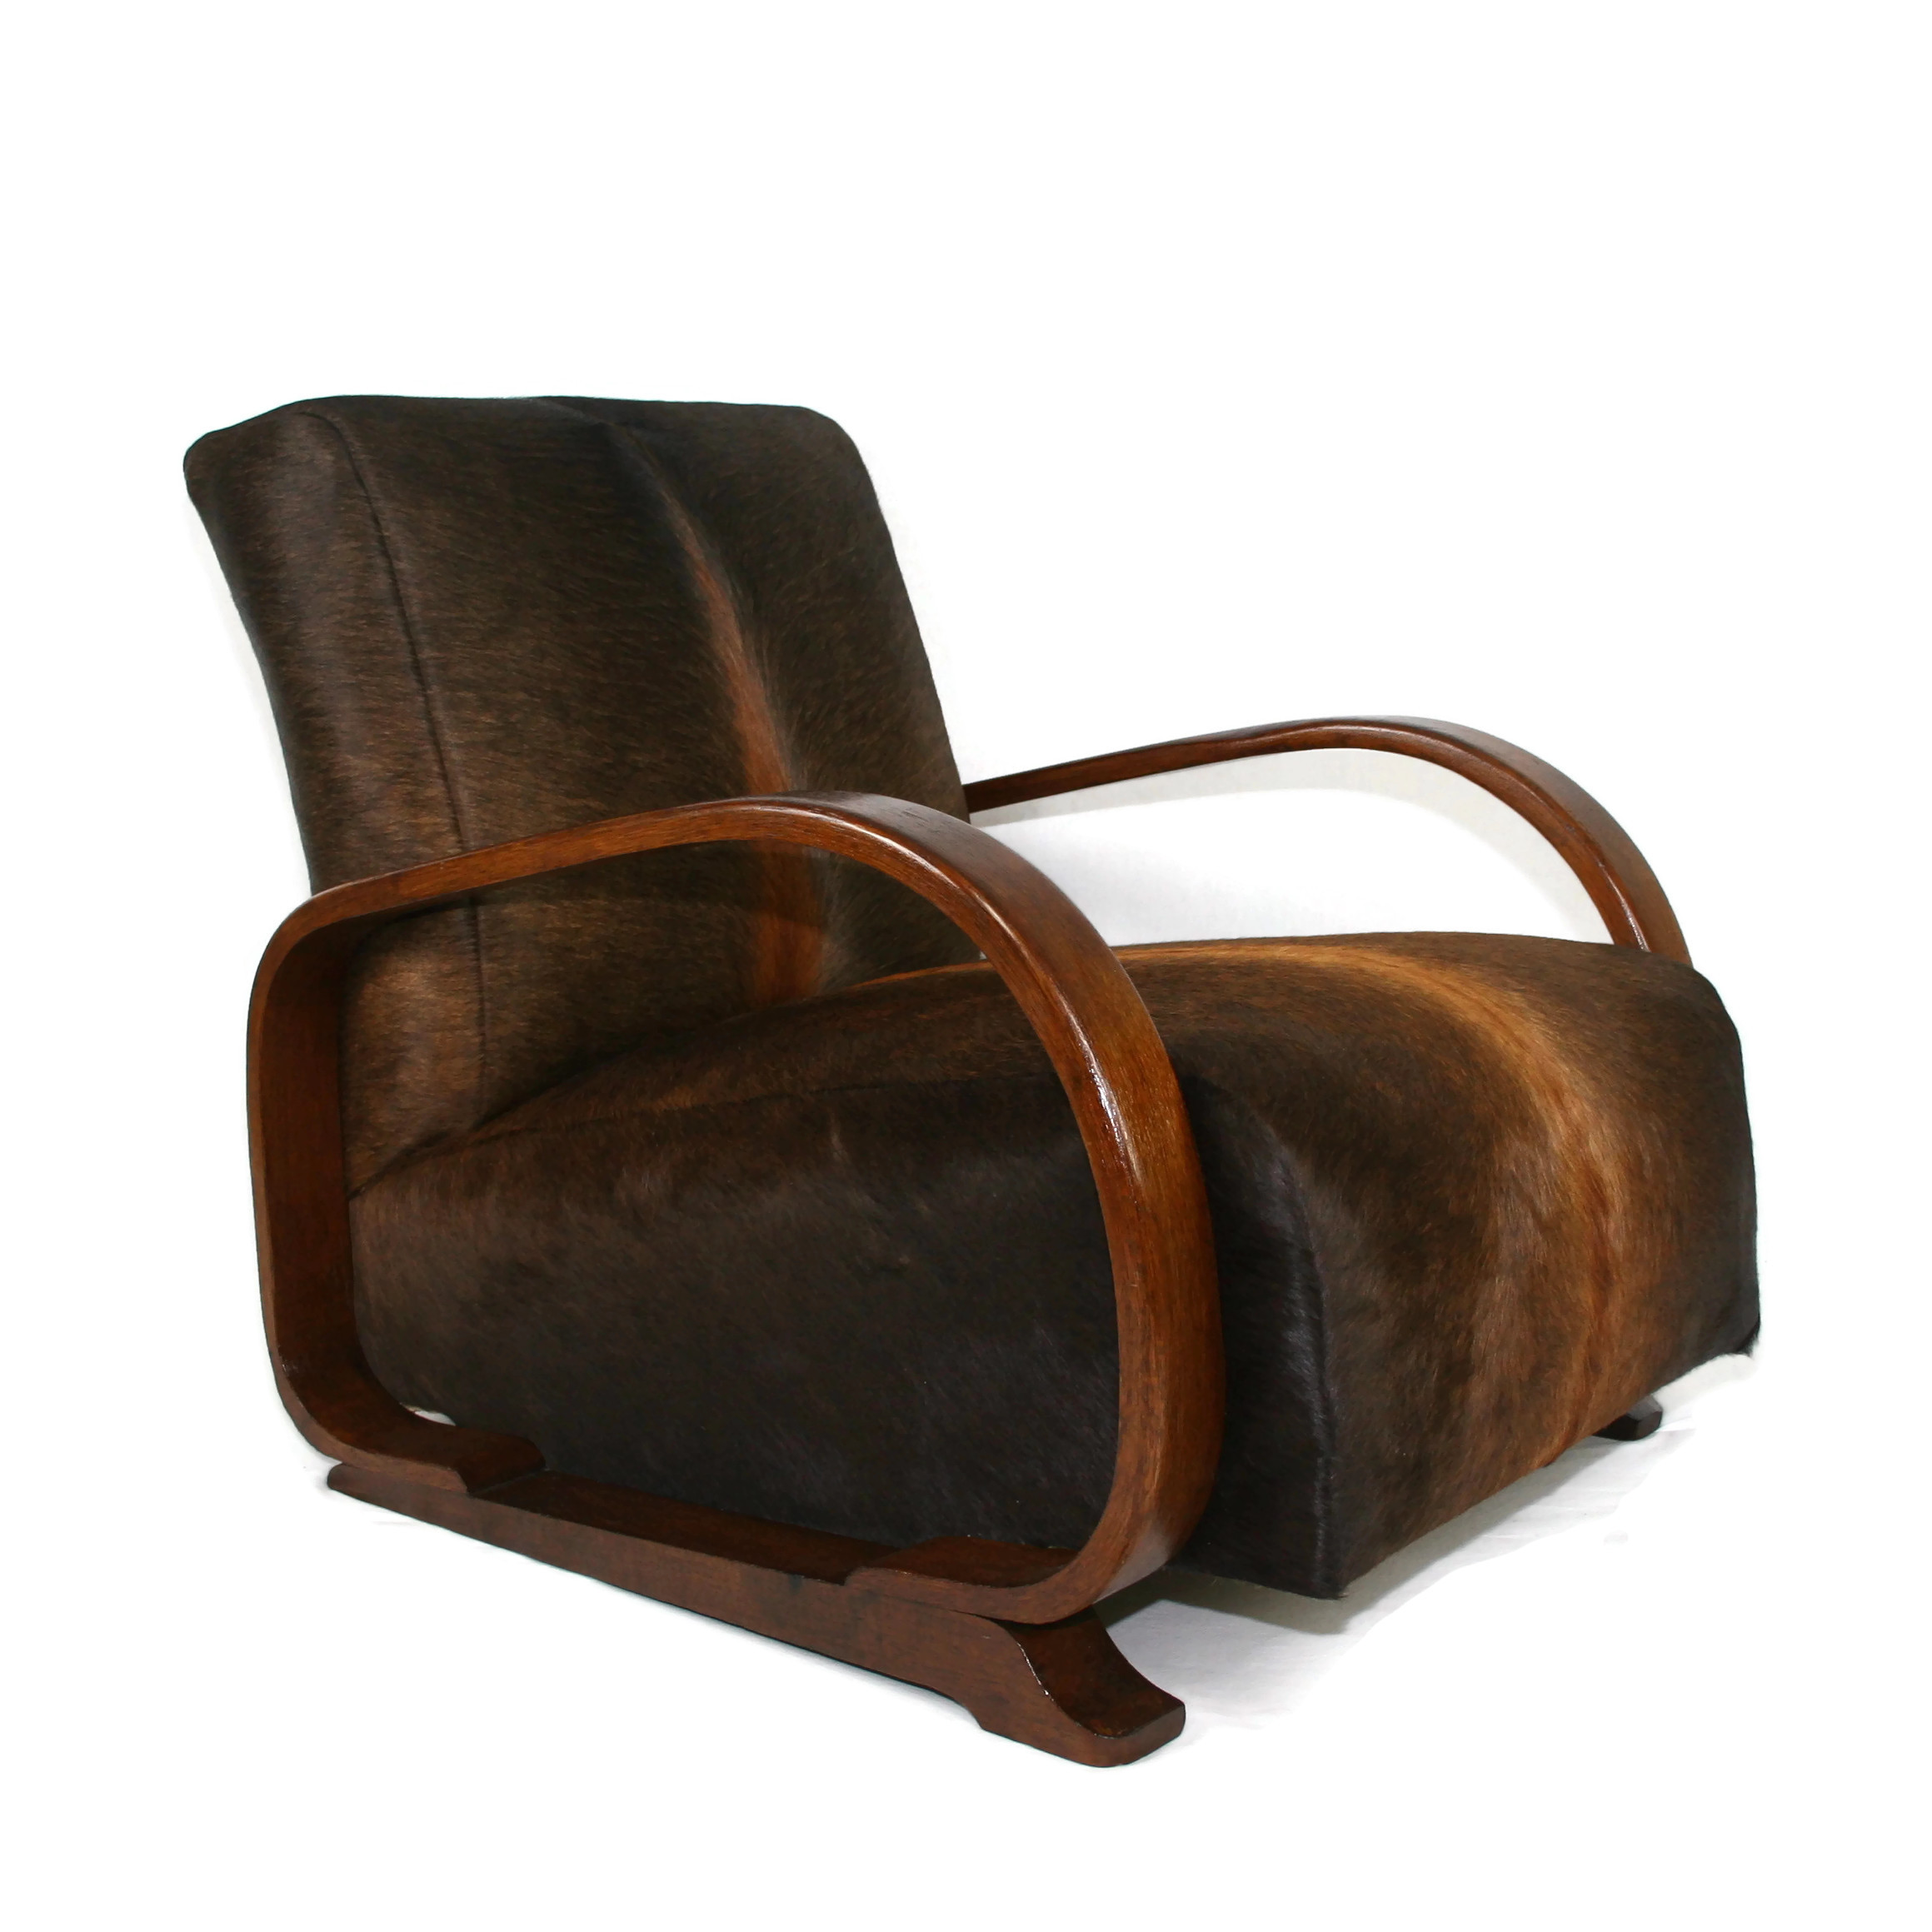 Awe Inspiring Heals Art Deco Armchair In South American Cow Hide Andrewgaddart Wooden Chair Designs For Living Room Andrewgaddartcom